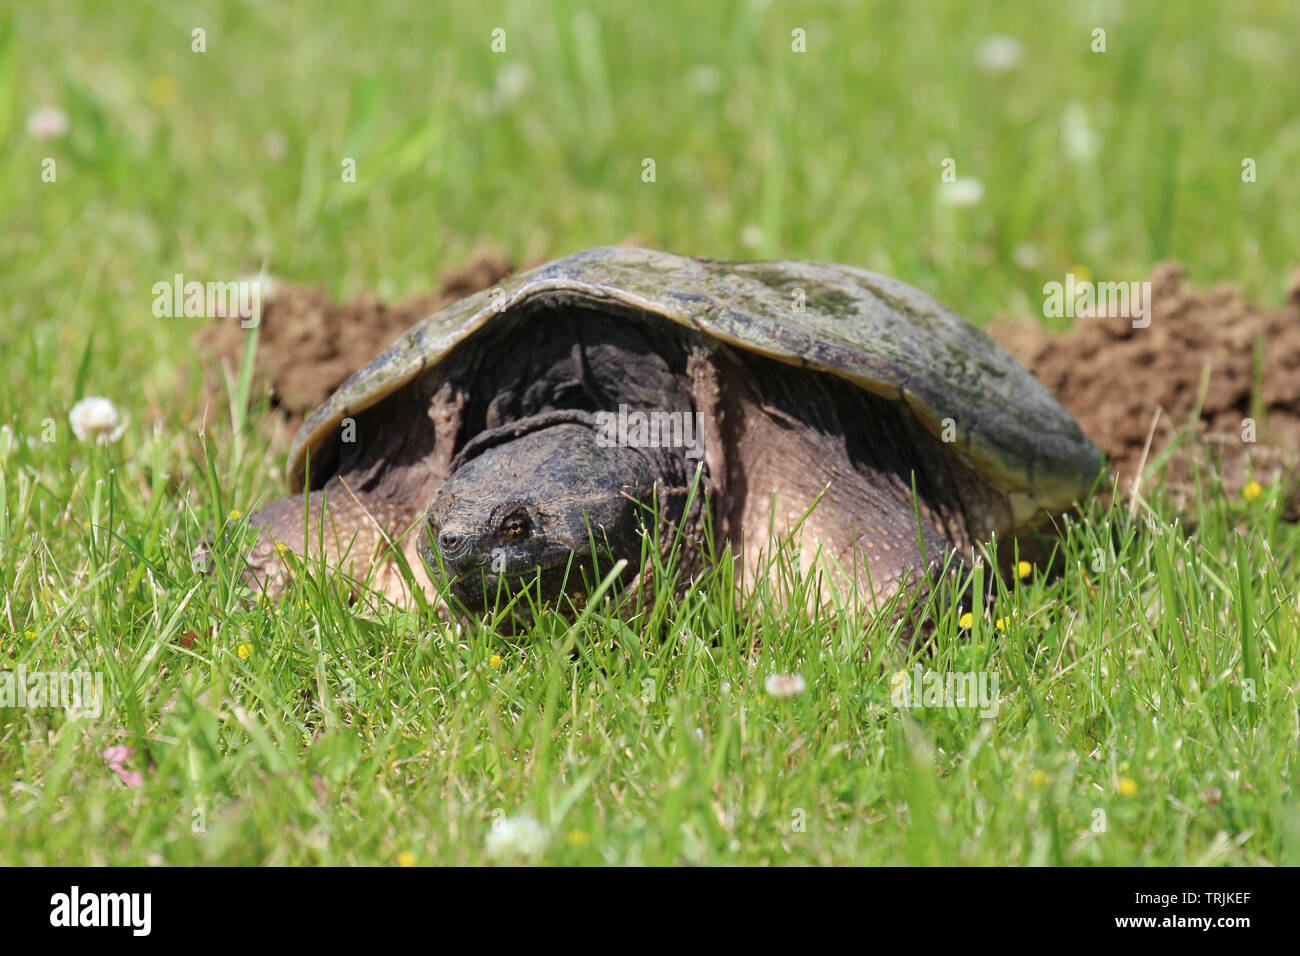 Close up, front view, of the head and shell of a large Common Snapping Turtle laying in the grass in Trevor, Wisconsin, USA, in the spring using a sof Stock Photo